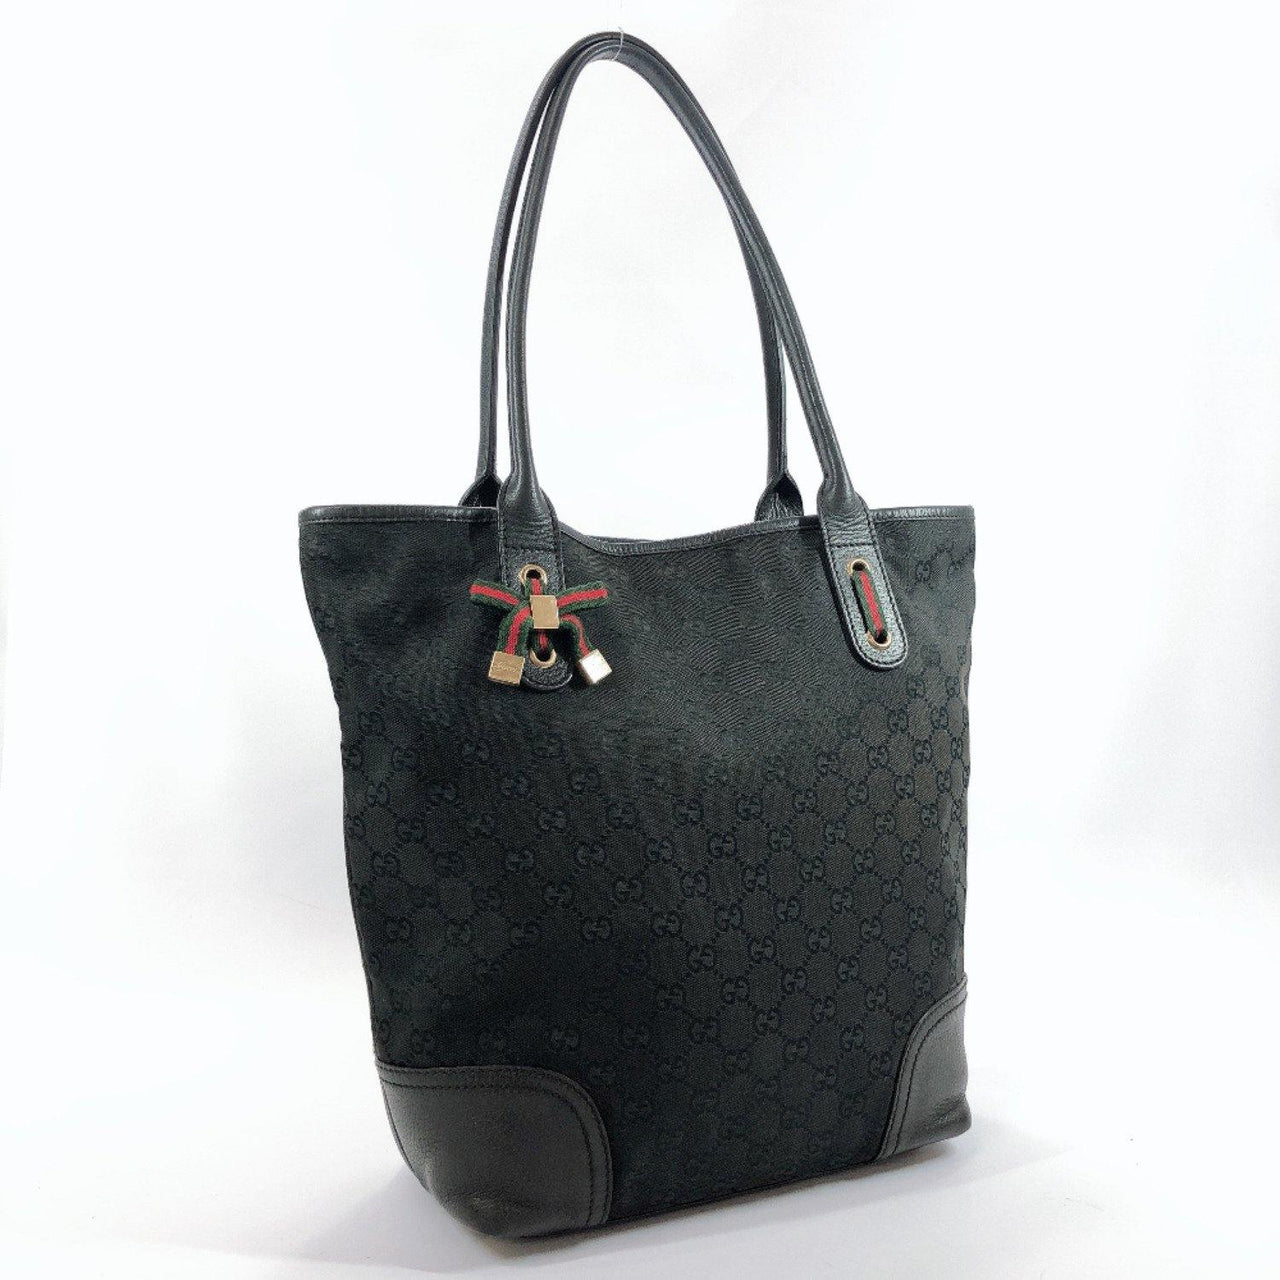 GUCCI Tote Bag 181779 Sherry Prince GG canvas black Women Used - JP-BRANDS.com